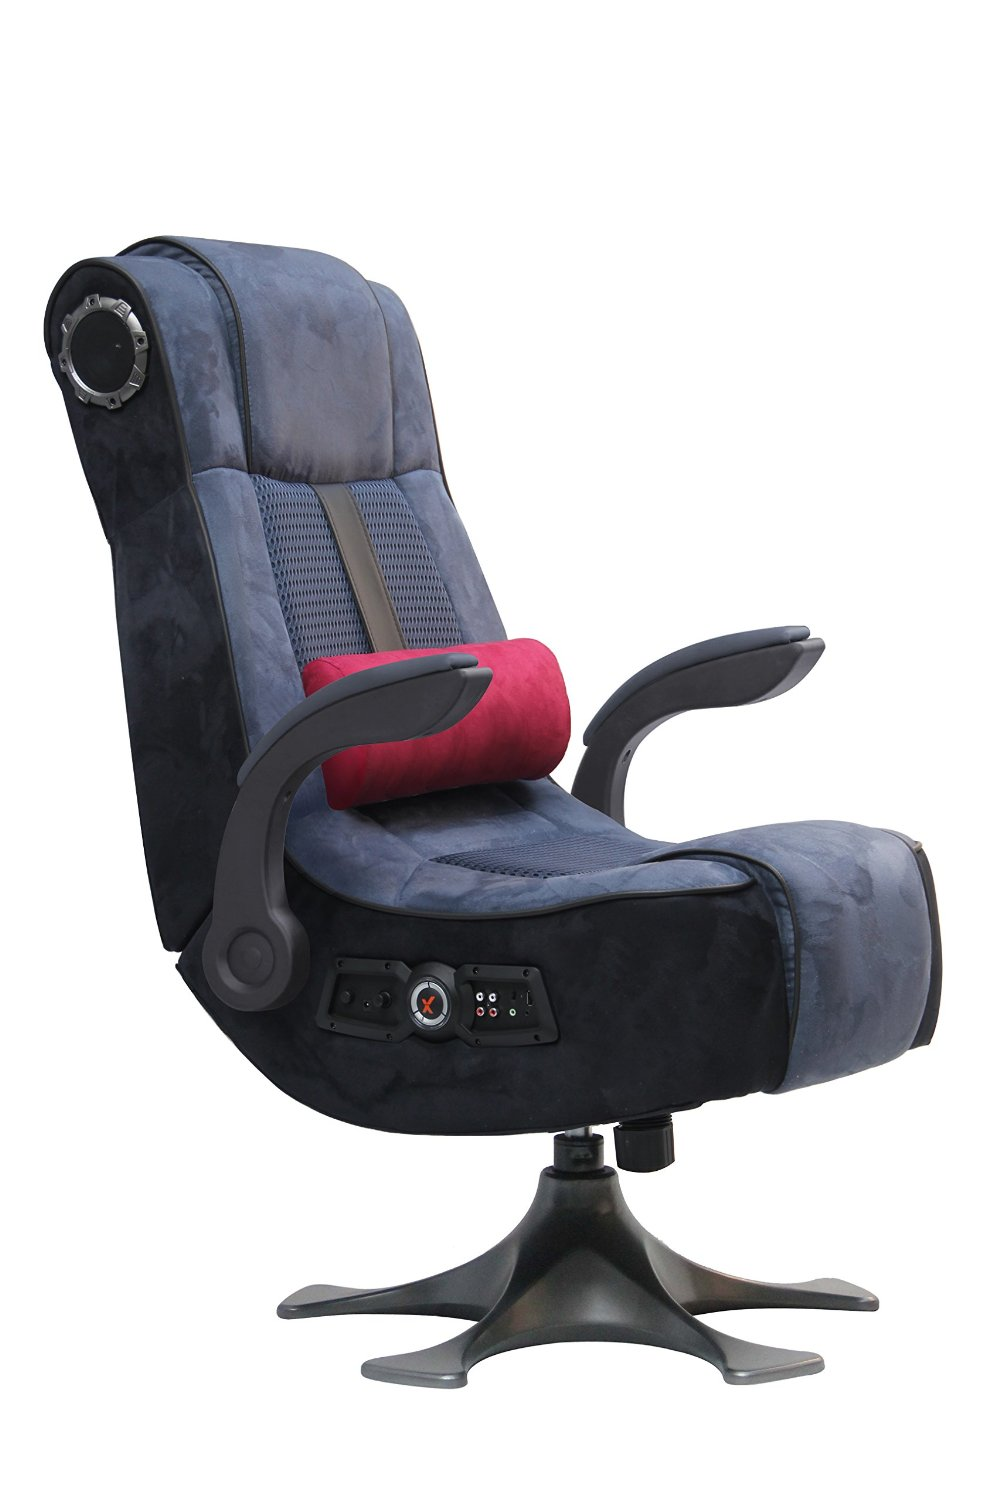 x rocker gaming chair buyers info. Black Bedroom Furniture Sets. Home Design Ideas